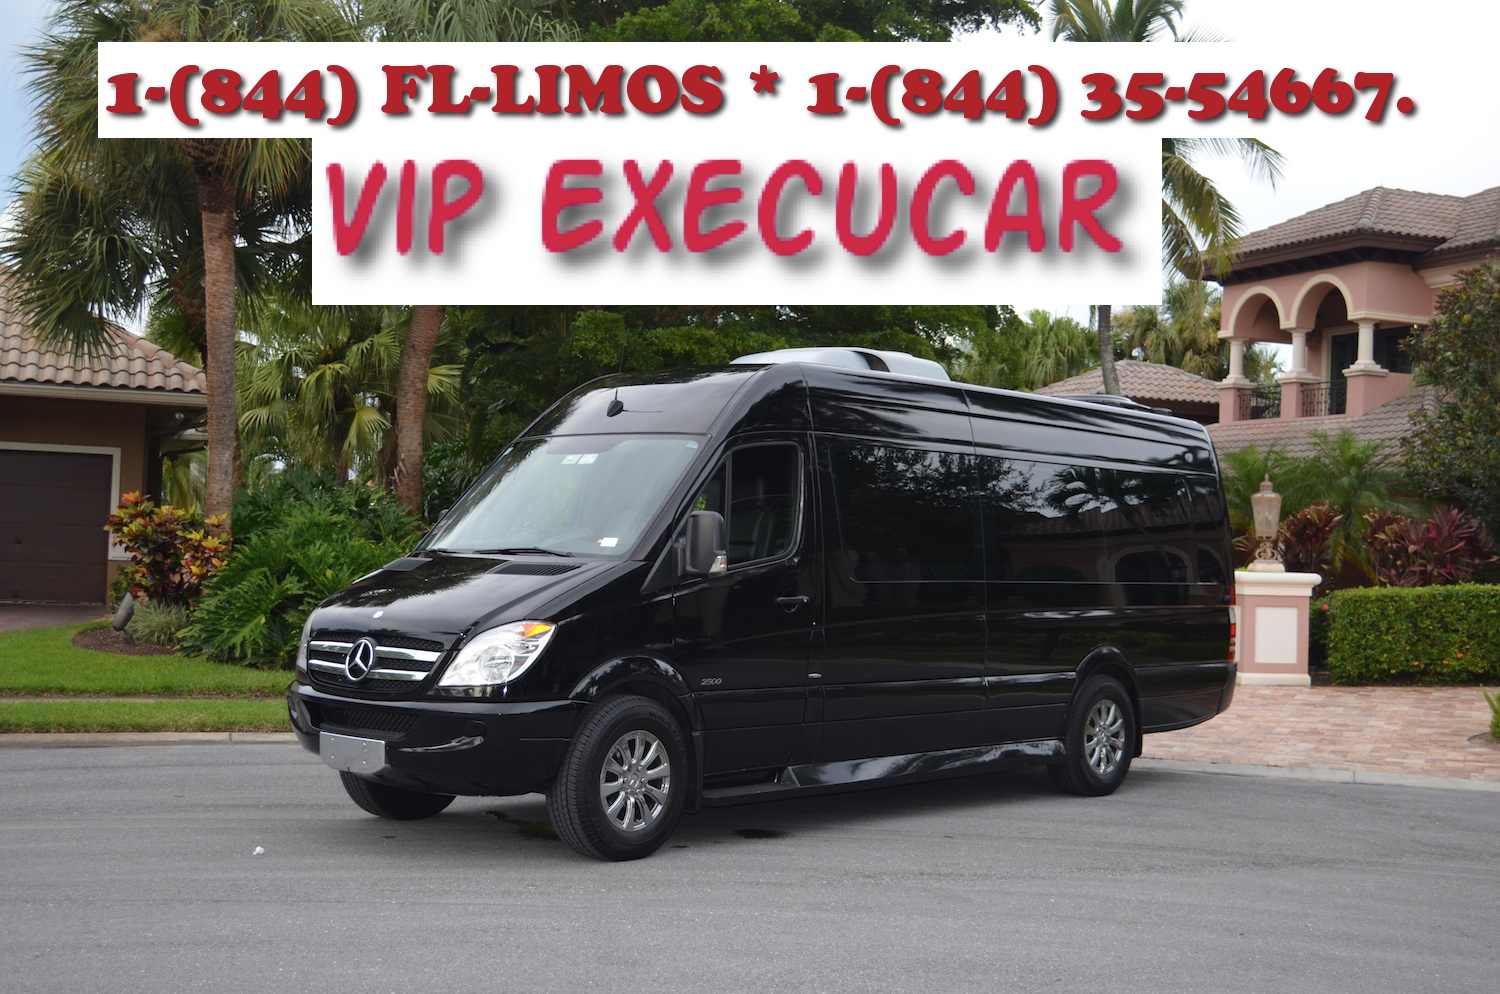 Need a Party Bus? party bus miami ,wellington party bus, wellington party buses, limo bus, limo bus service in wellington FL, limo bus, entertainer coach, mini bus in wellington, party coach, party anywhere.